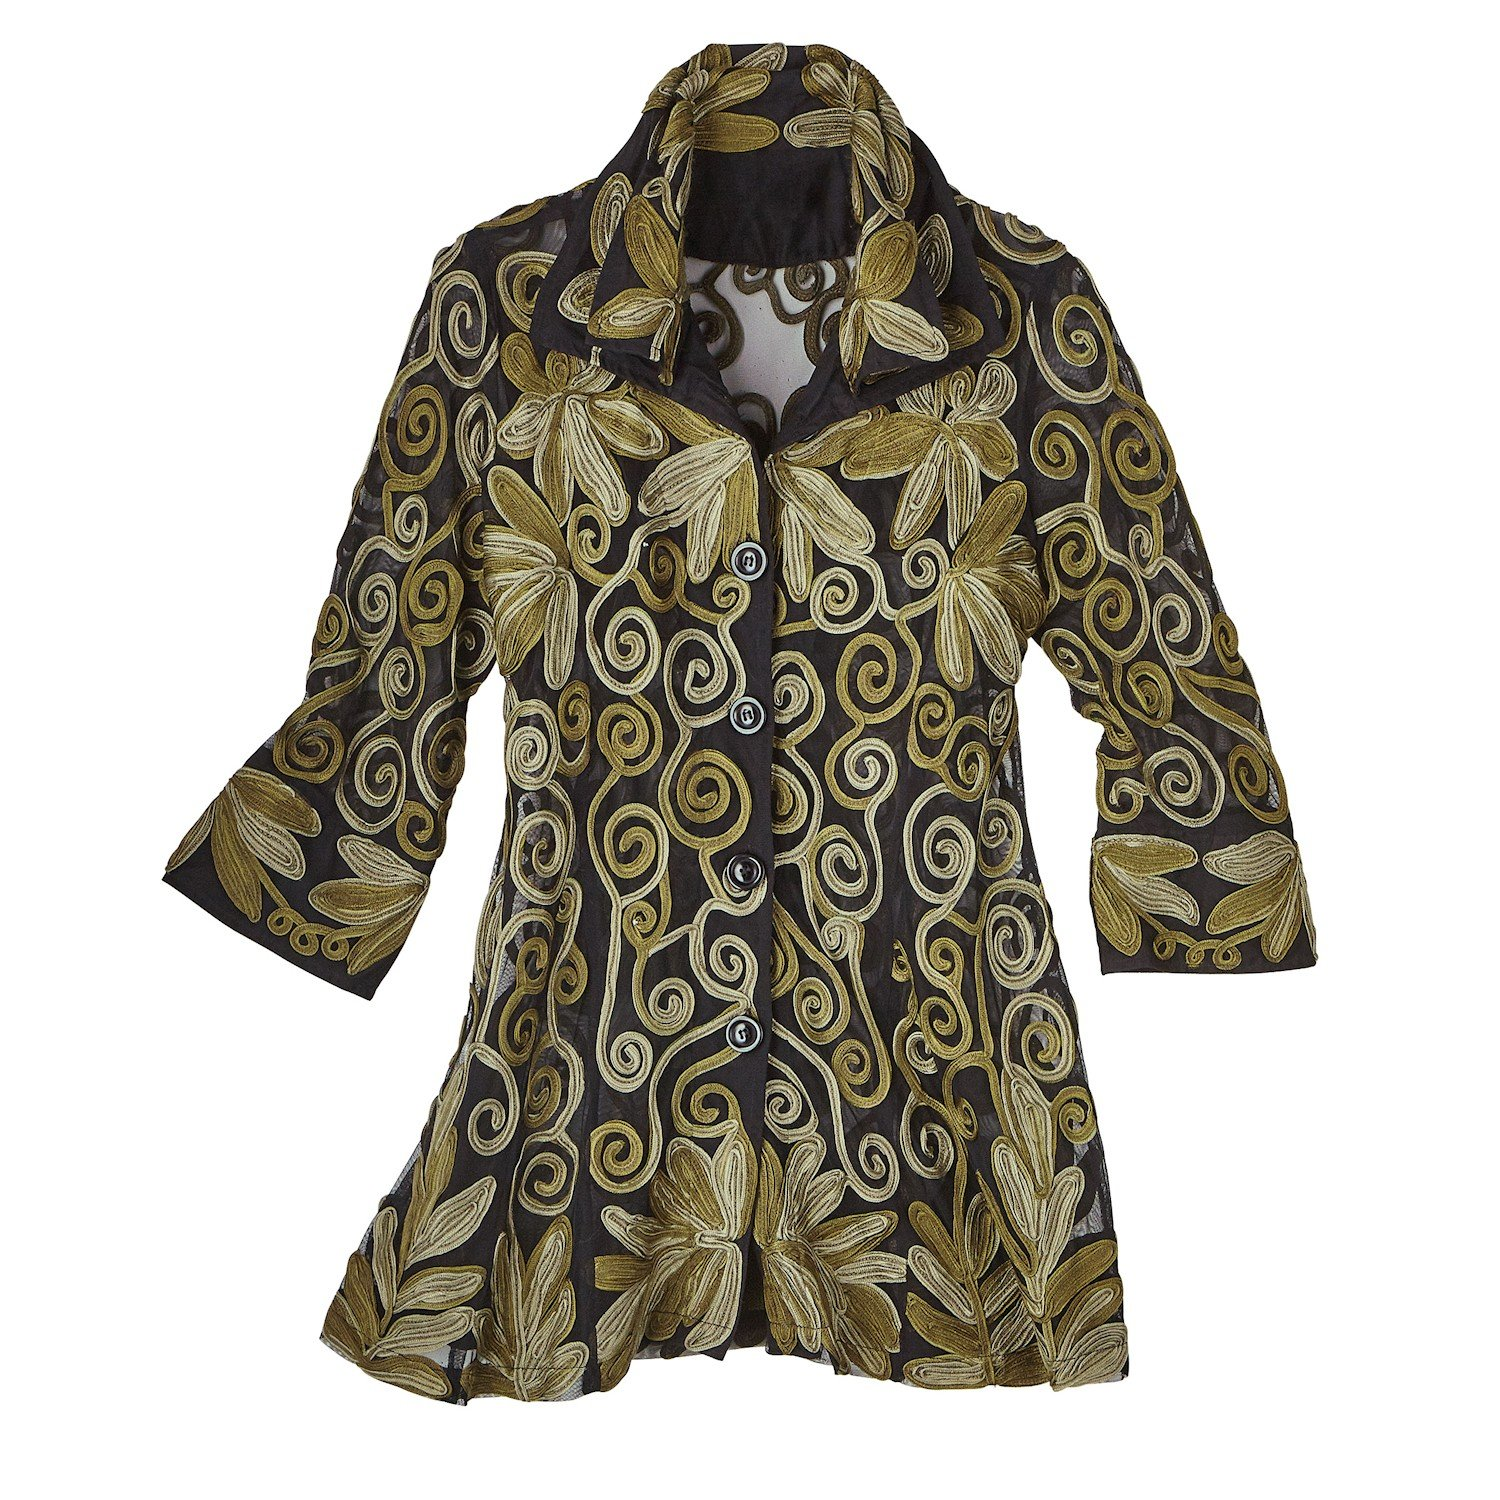 Parsley & Sage Women's Button-Down Tunic Shirt - All-Over Embroidery Metallic Crewelwork-Large by Parsley & Sage